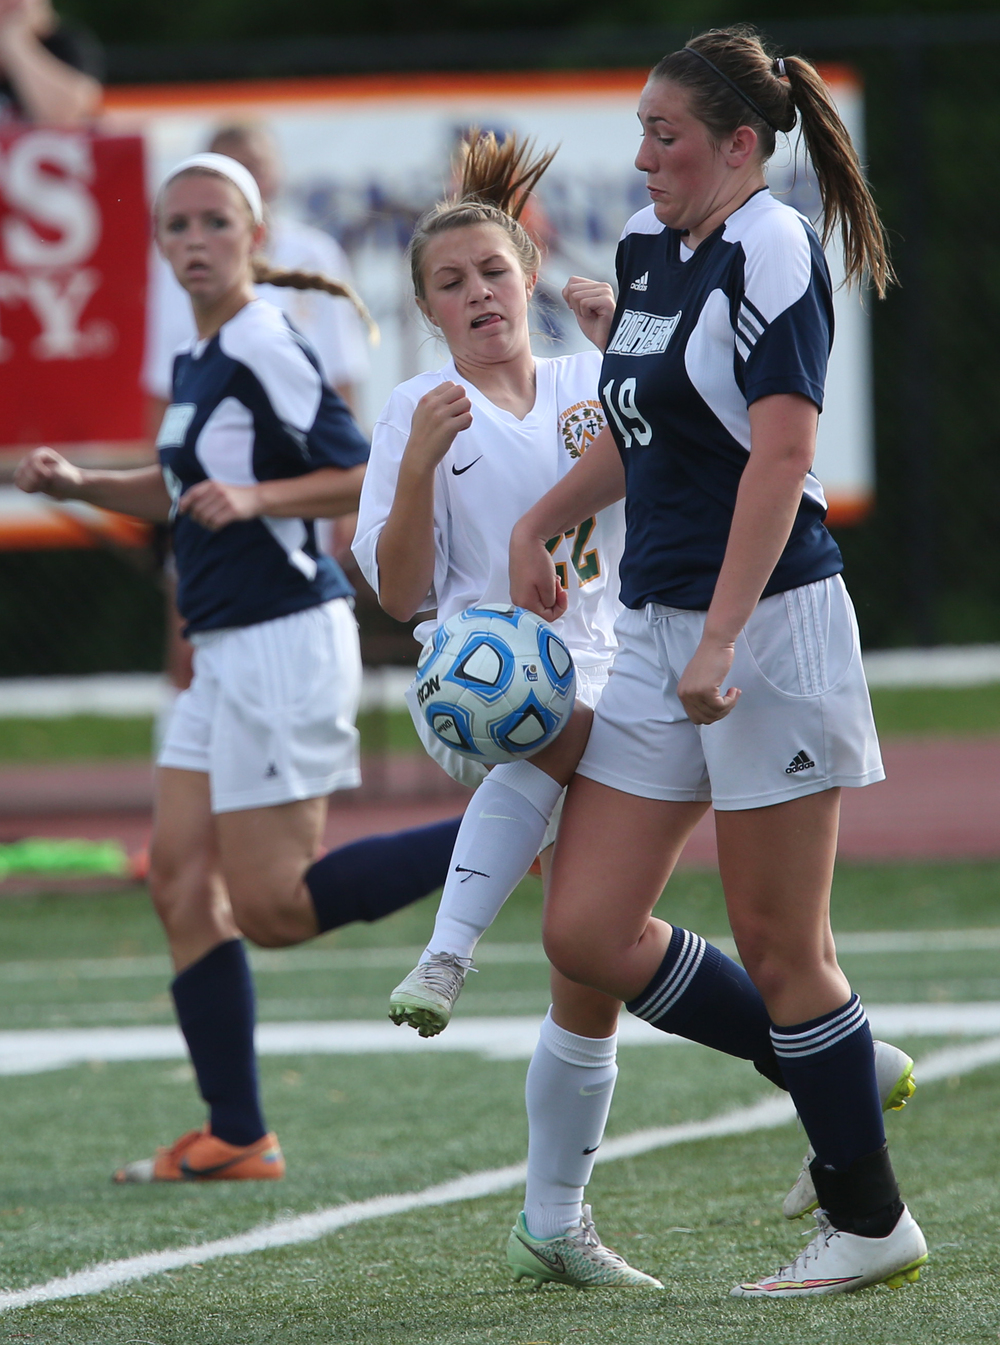 Rockets player Maddie Capps tries to keep her hands away from the ball while brushing into Sabers player Morgan Cinnamon as they each try to gain control during second half action. The Rochester High School Rockets defeated the Champaign St. Thomas More Sabers 3-0 during the state 1A semifinal girls soccer match at North Central College in Naperville on Friday evening, May 29, 2015. David Spencer/The State Journal-Register